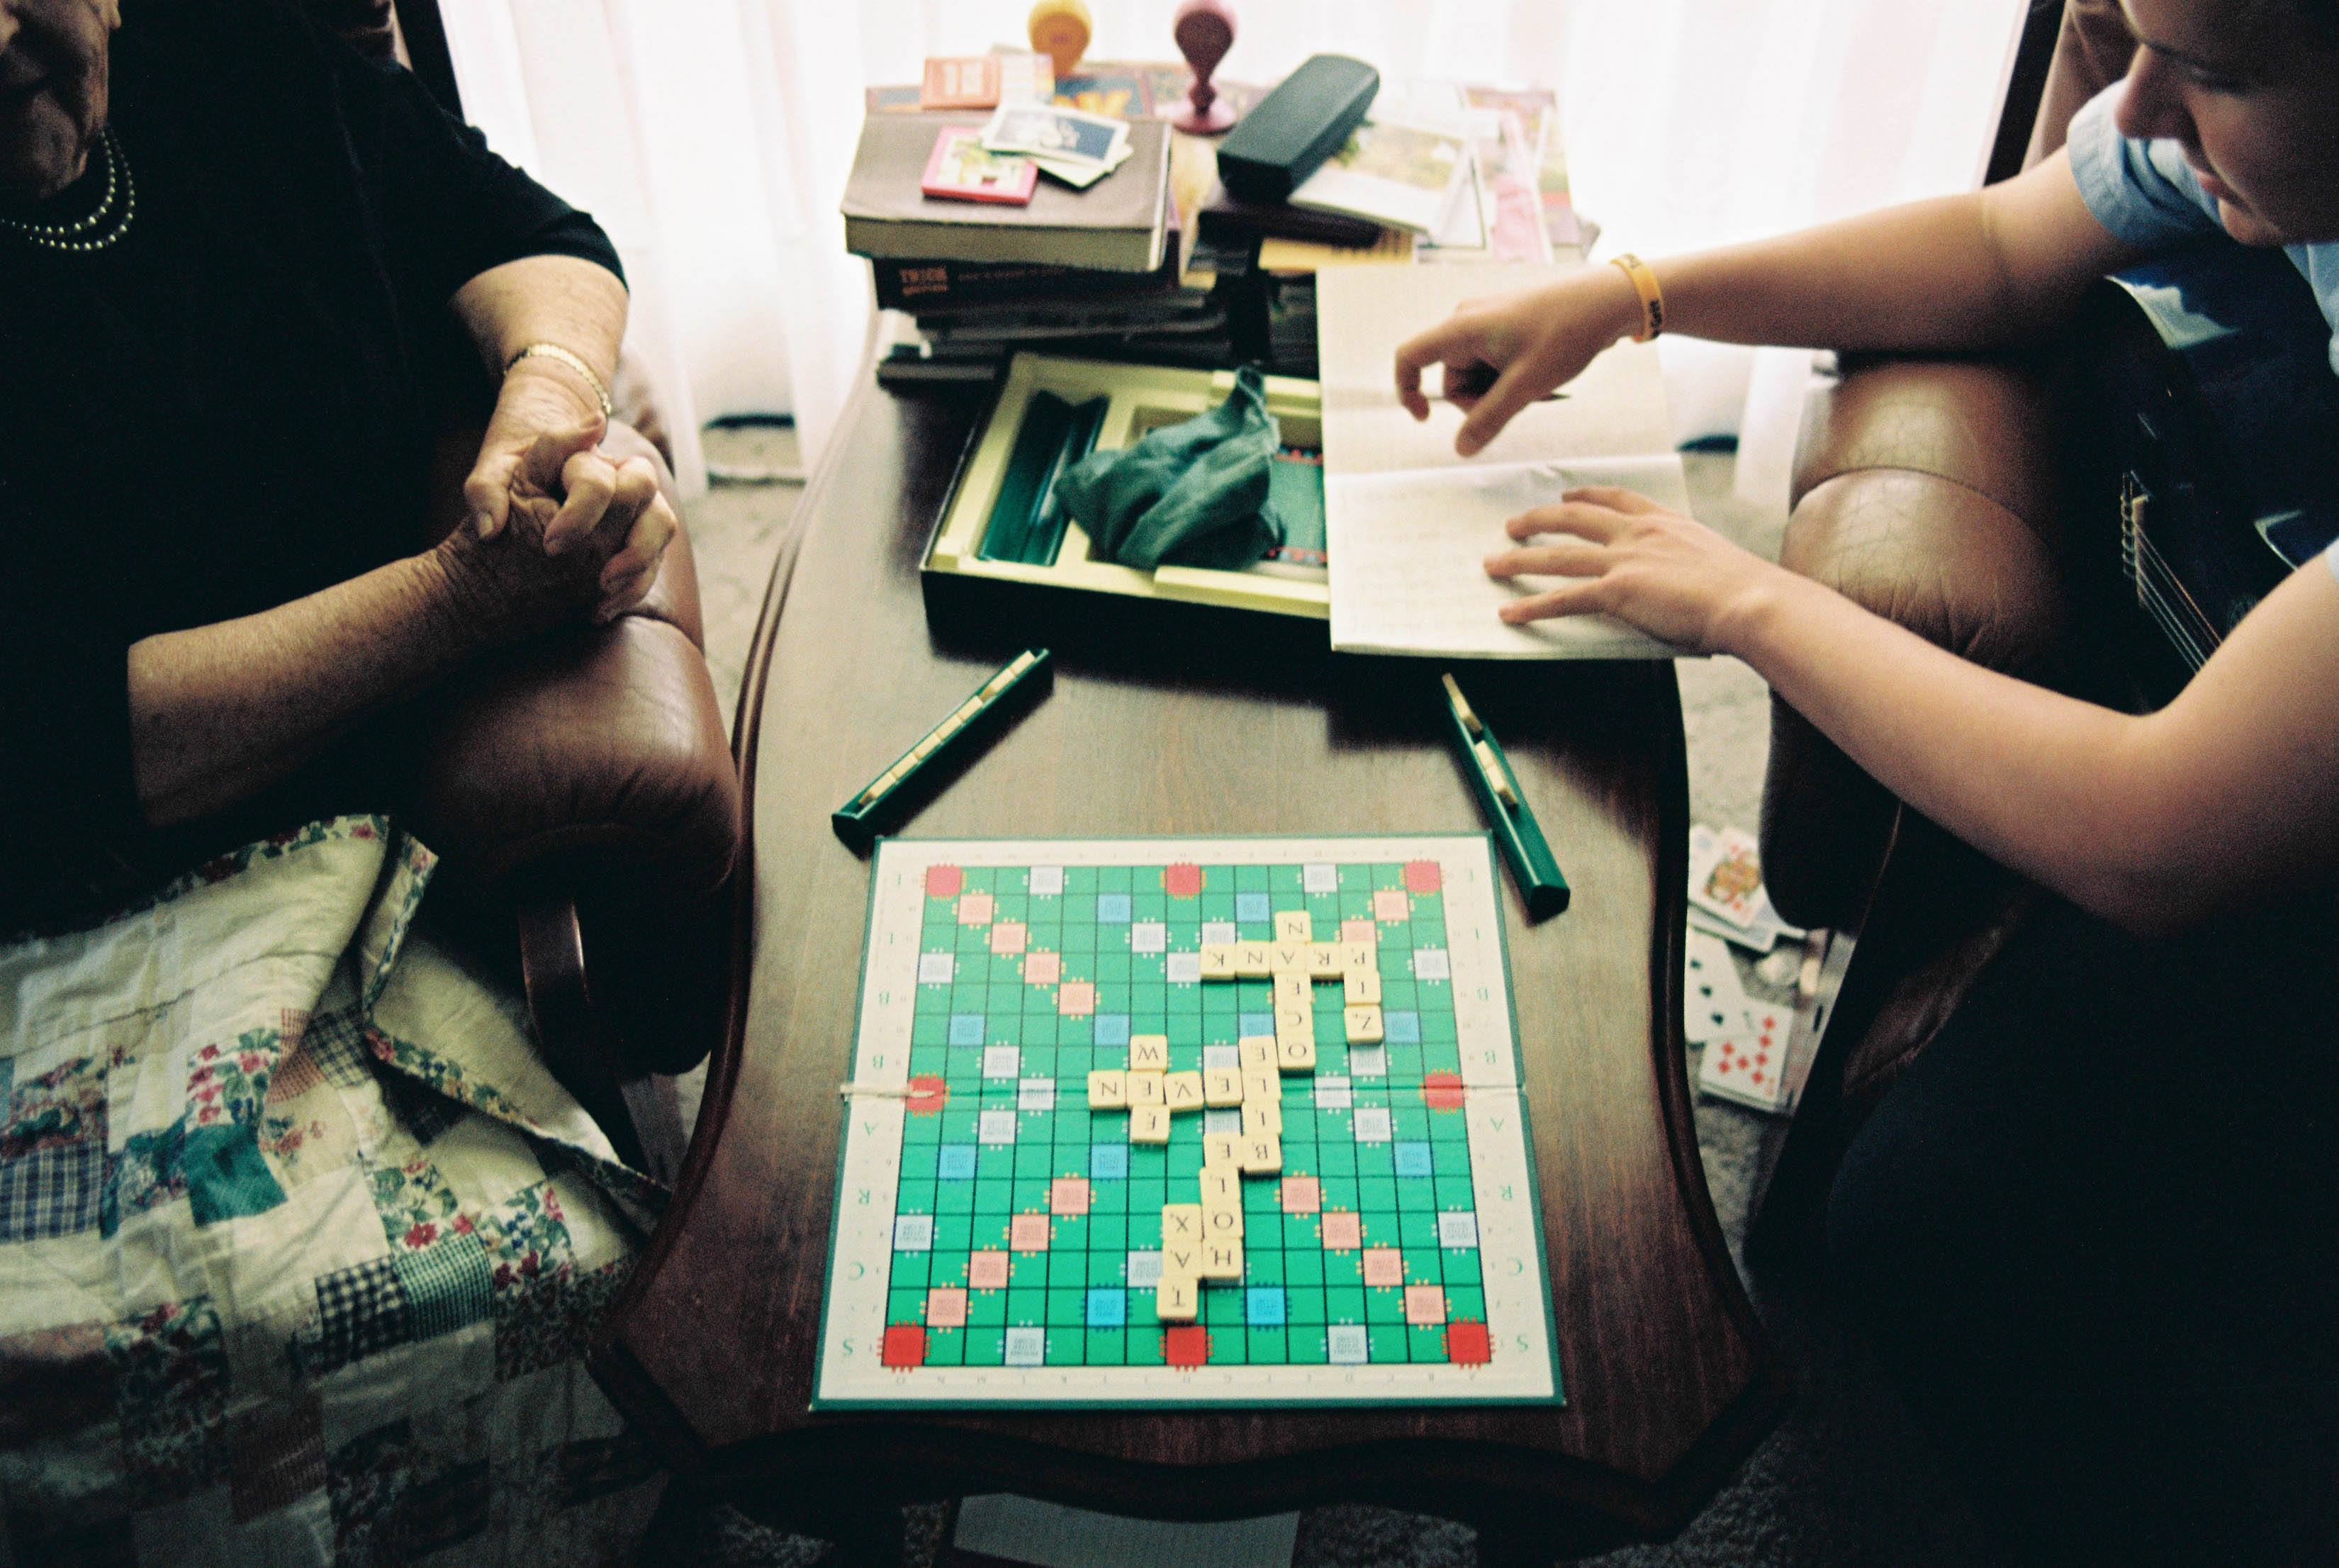 Documentary wedding photography of the groom's grandma and cousin playing scrabble